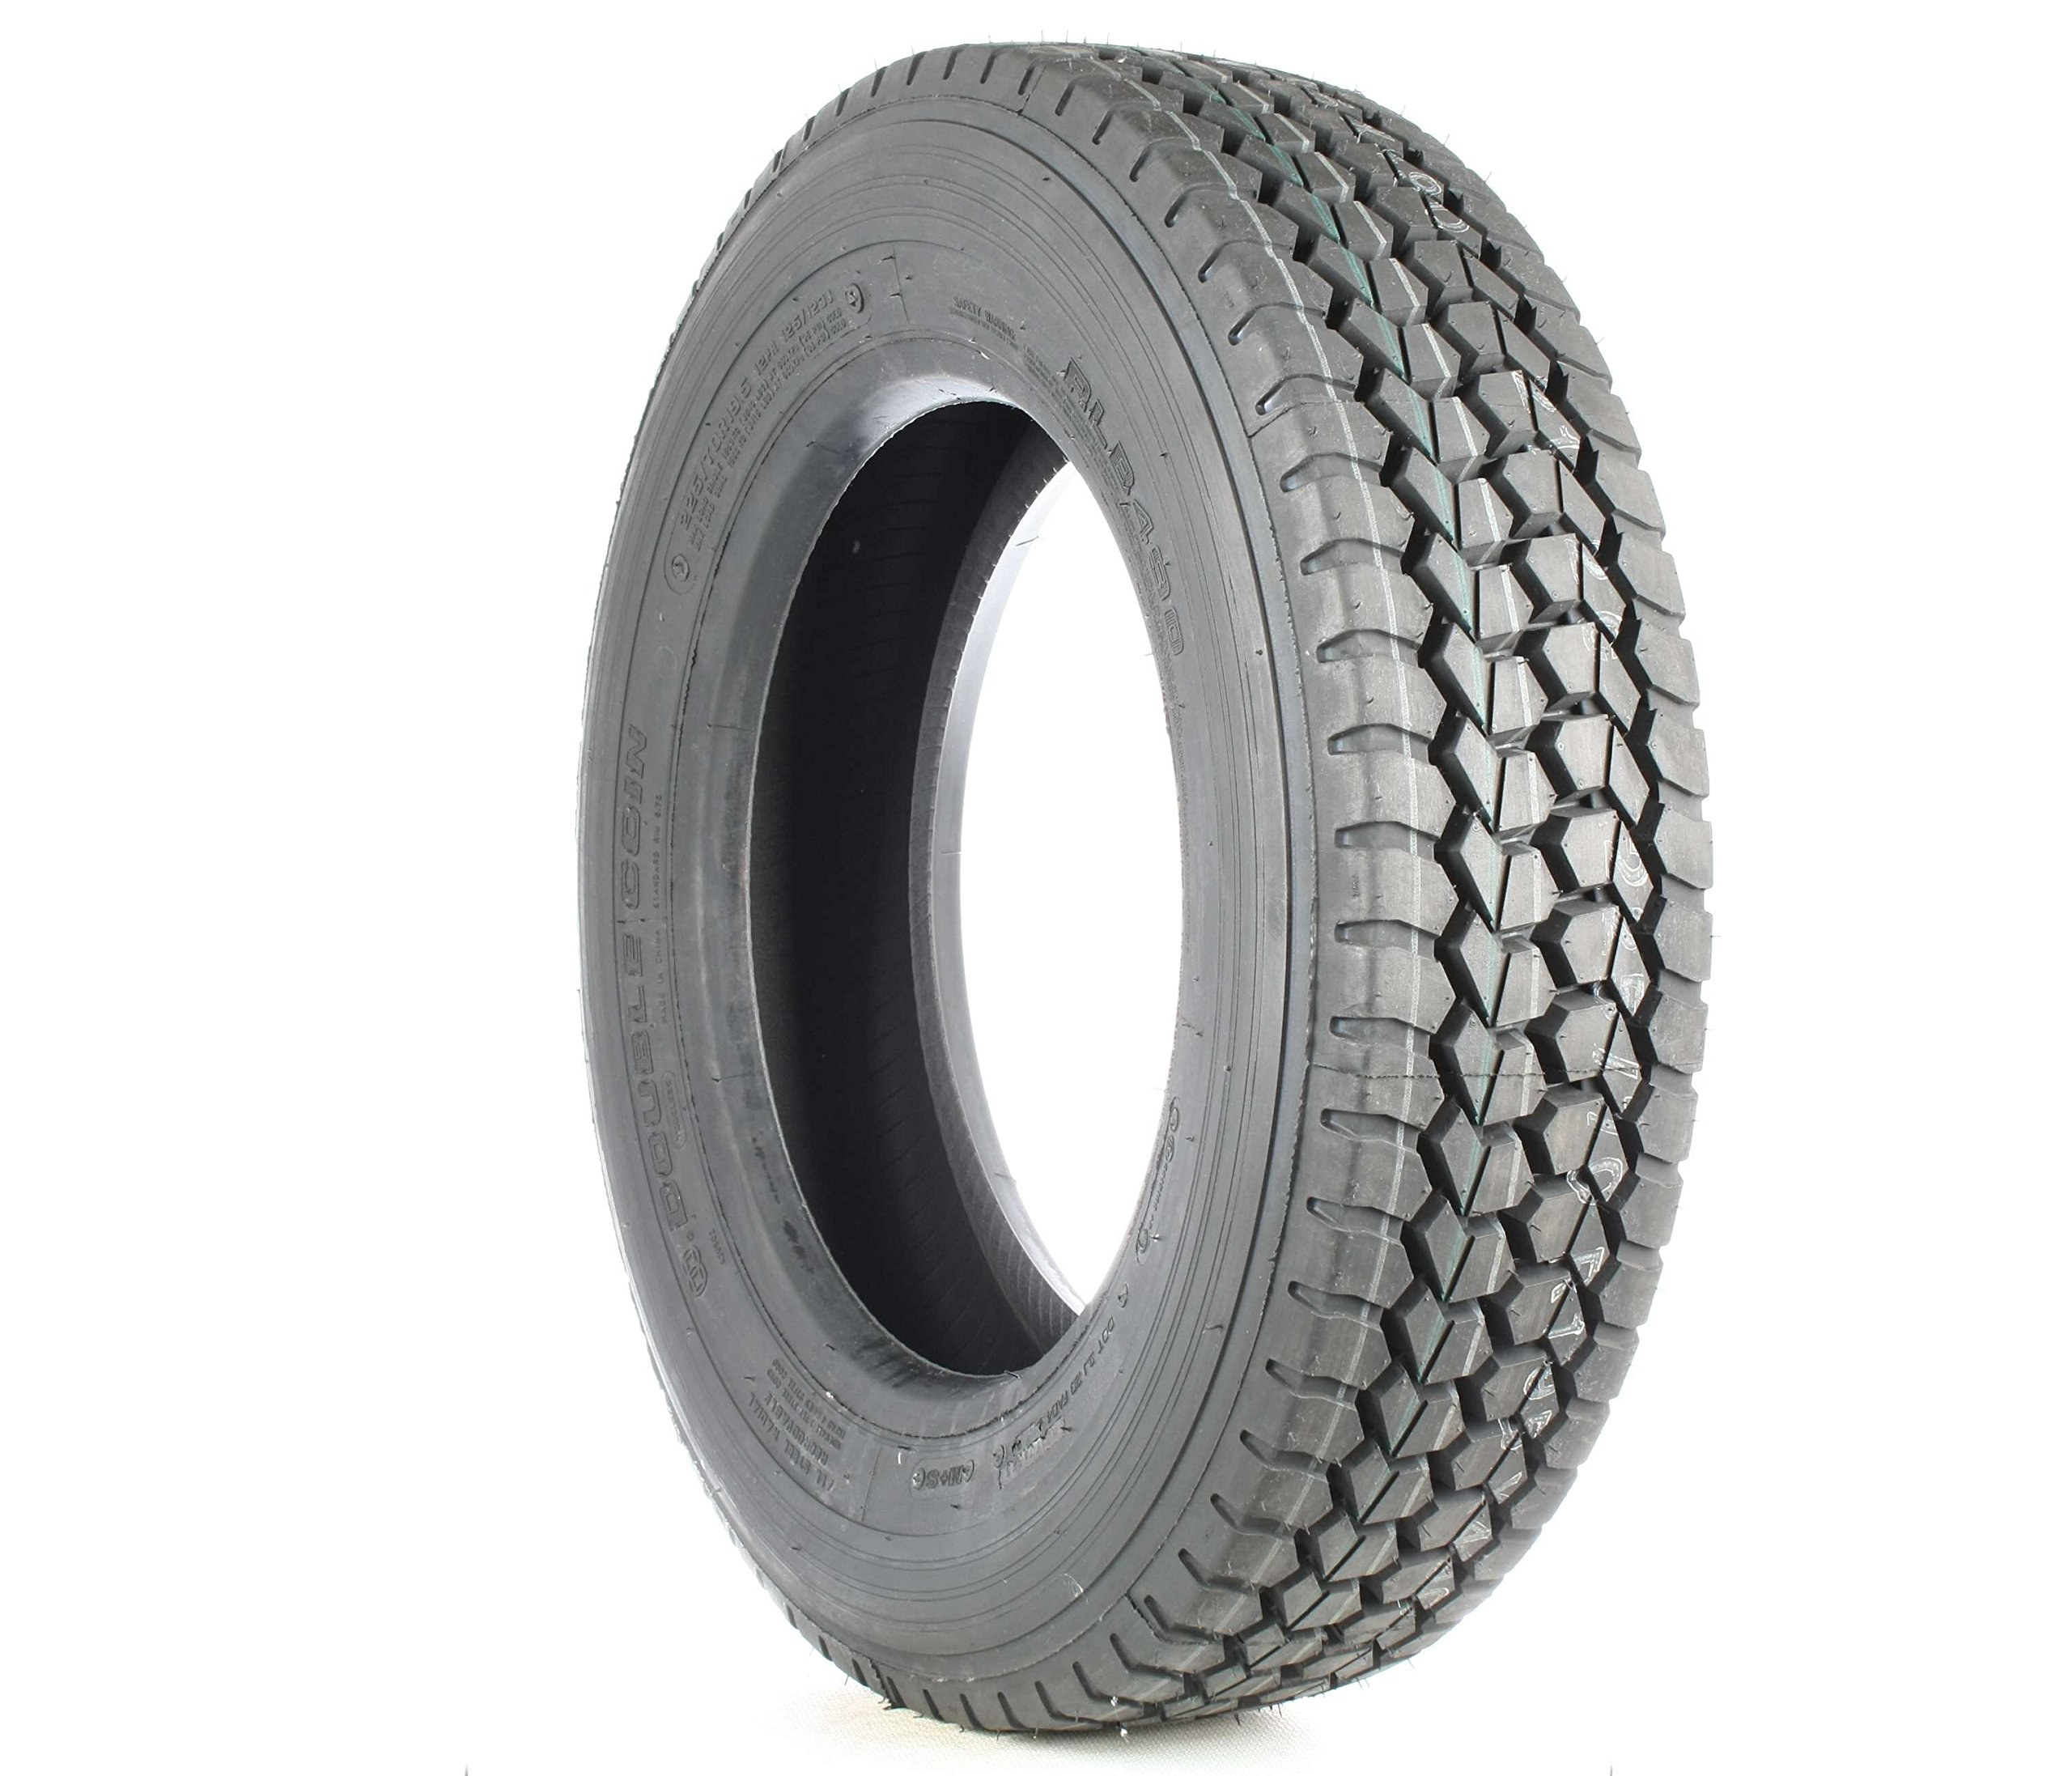 Double Coin RLB490 Low Profile Drive-Position Multi-Use Commercial Radial Truck Tire - 225/70R19.5 12 ply by Double Coin (Image #1)